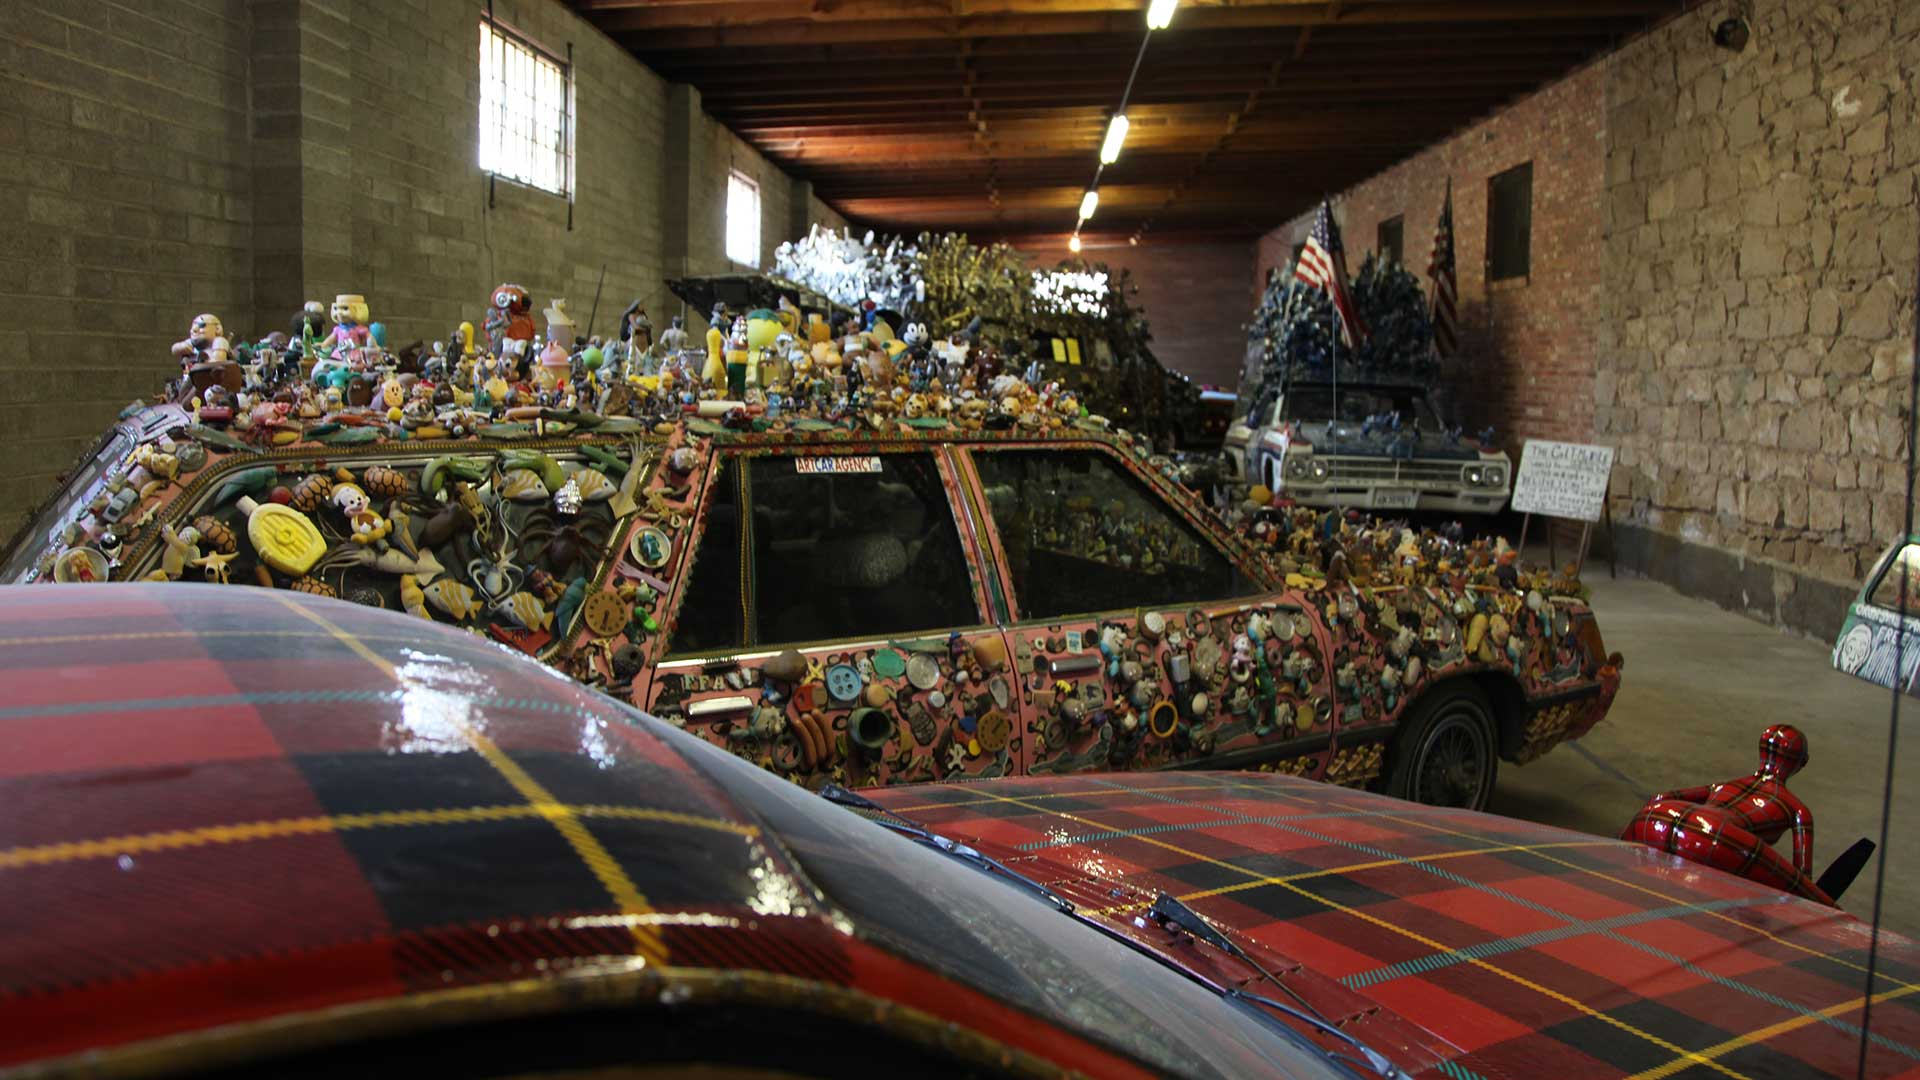 Art Car World is a museum that exhibits decorated vehicles from different places and artists.